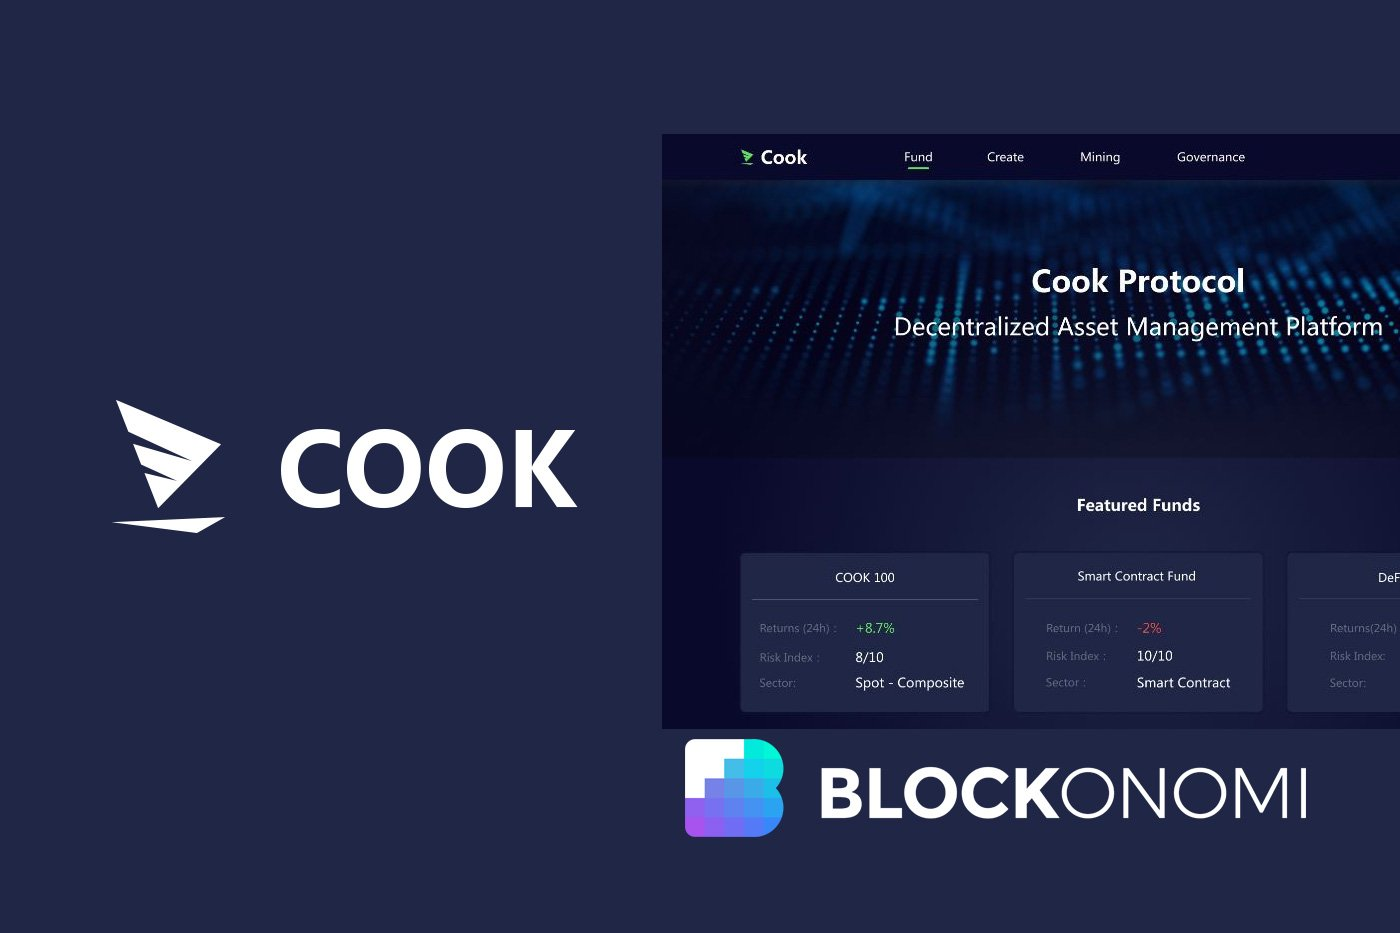 Cook Protocol: Decentralized Asset Management Platform